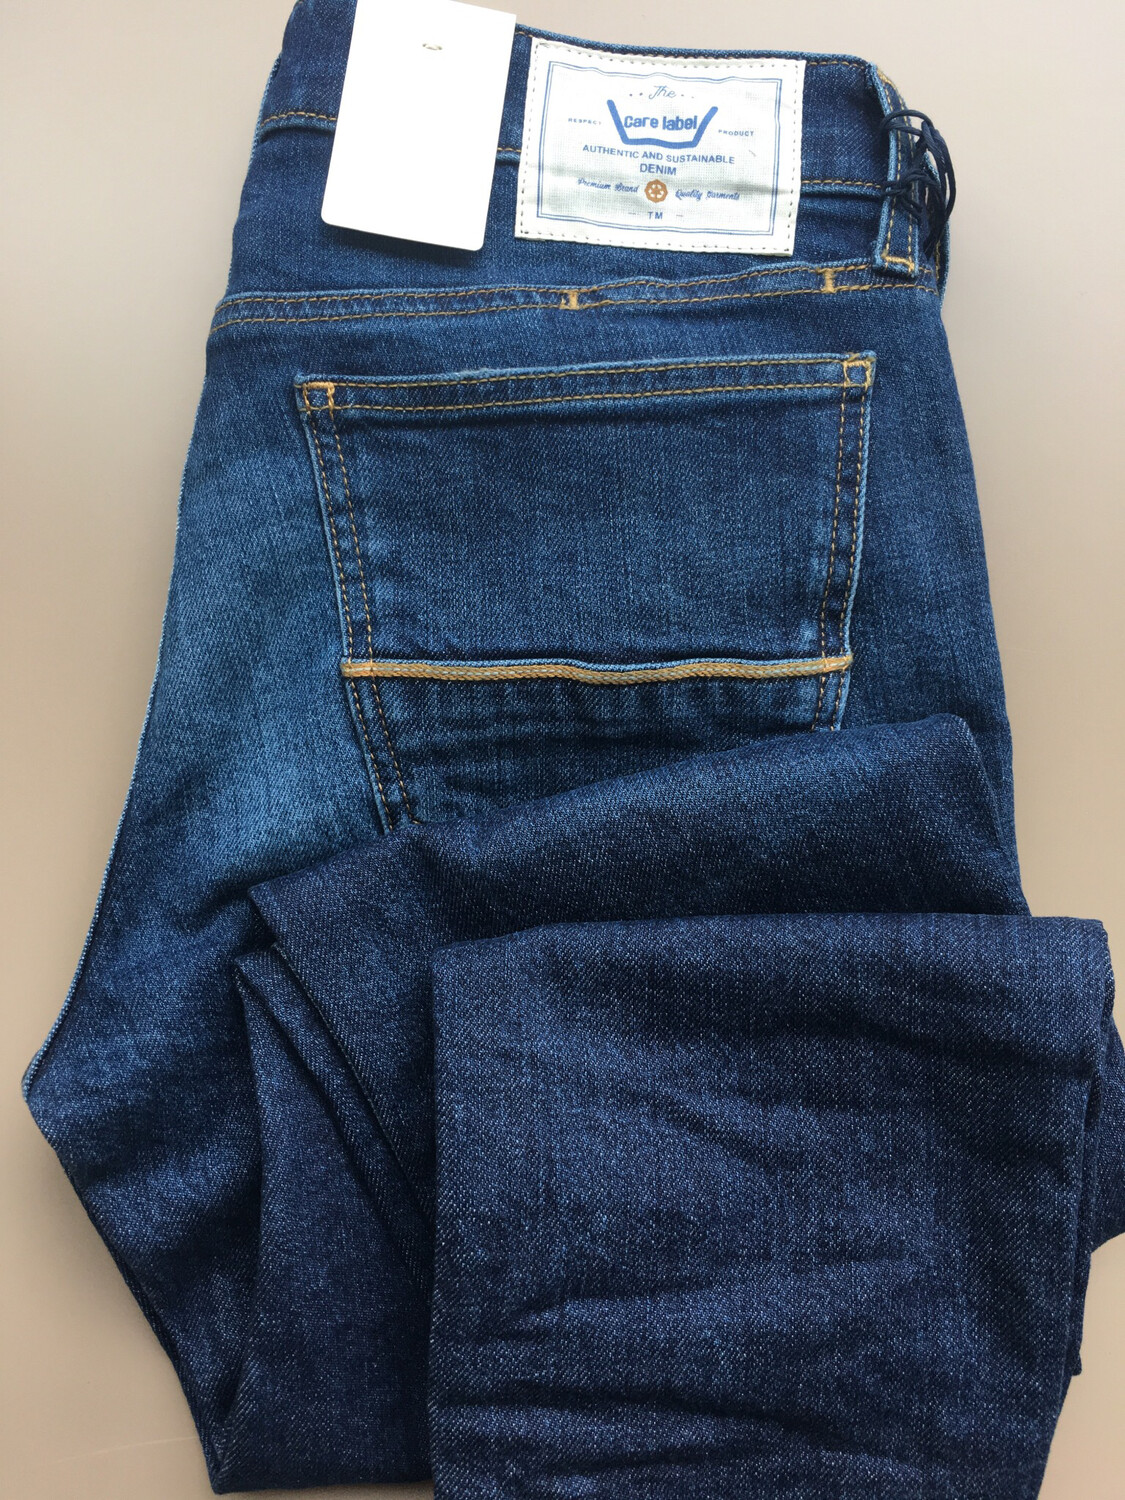 Jeans Boy Care Label